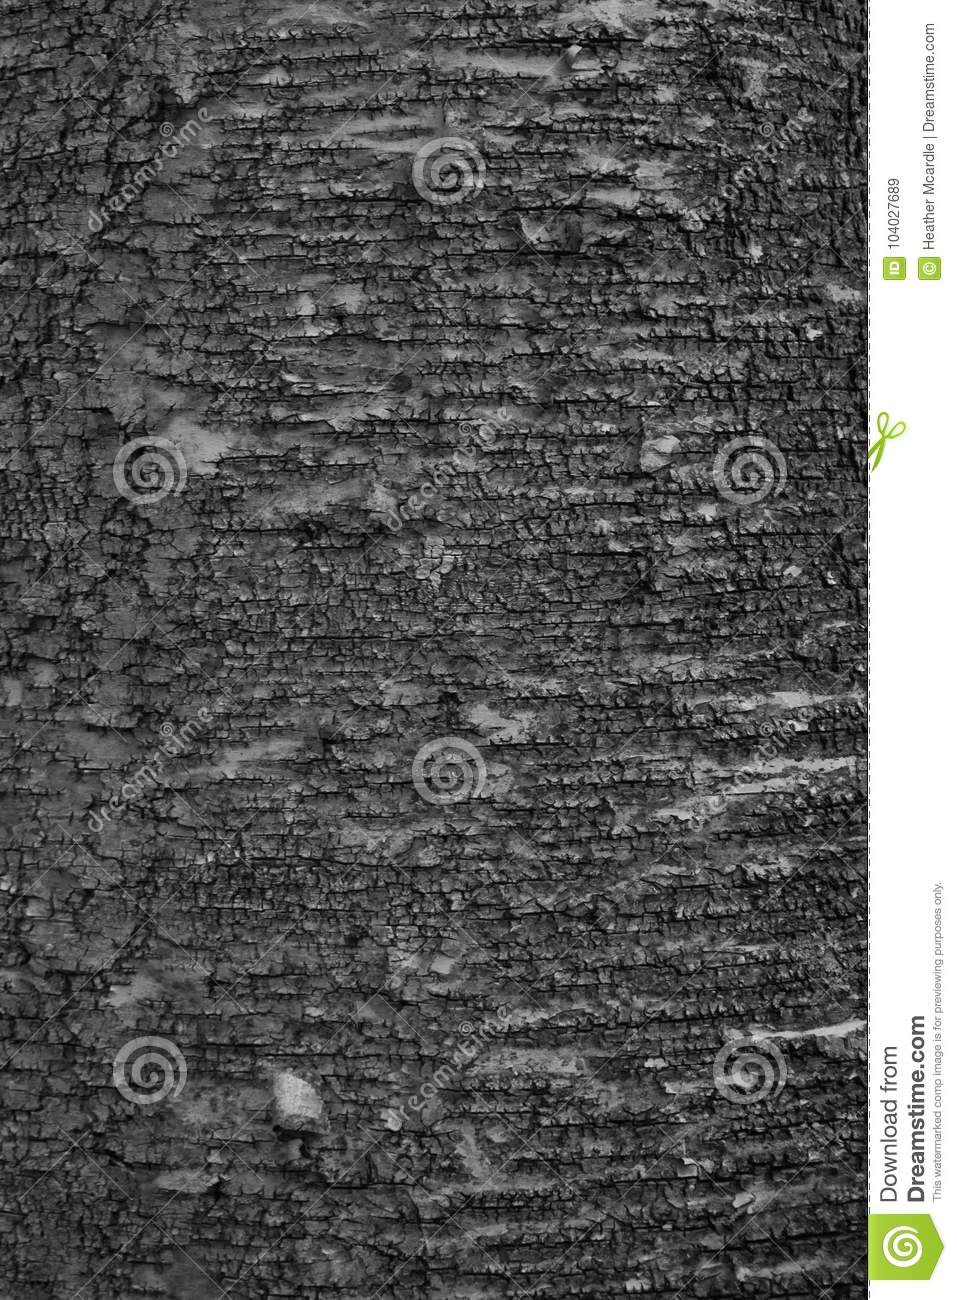 Textured deciduous bark in black and white